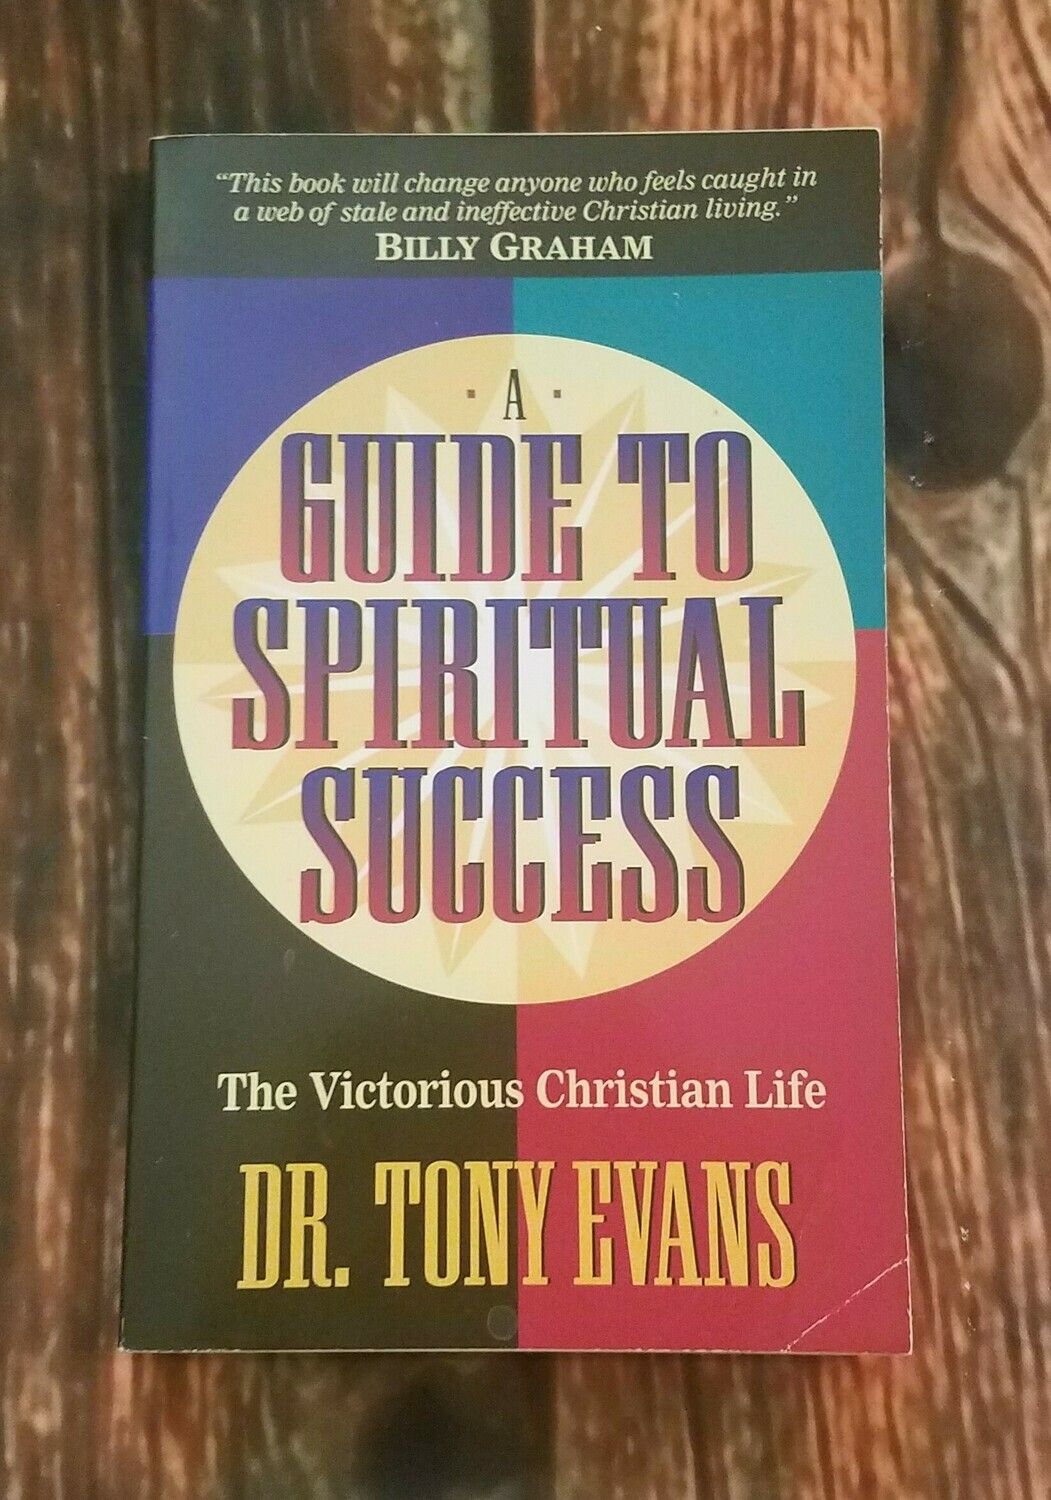 A Guide to Spiritual Success by Dr. Tony Evans